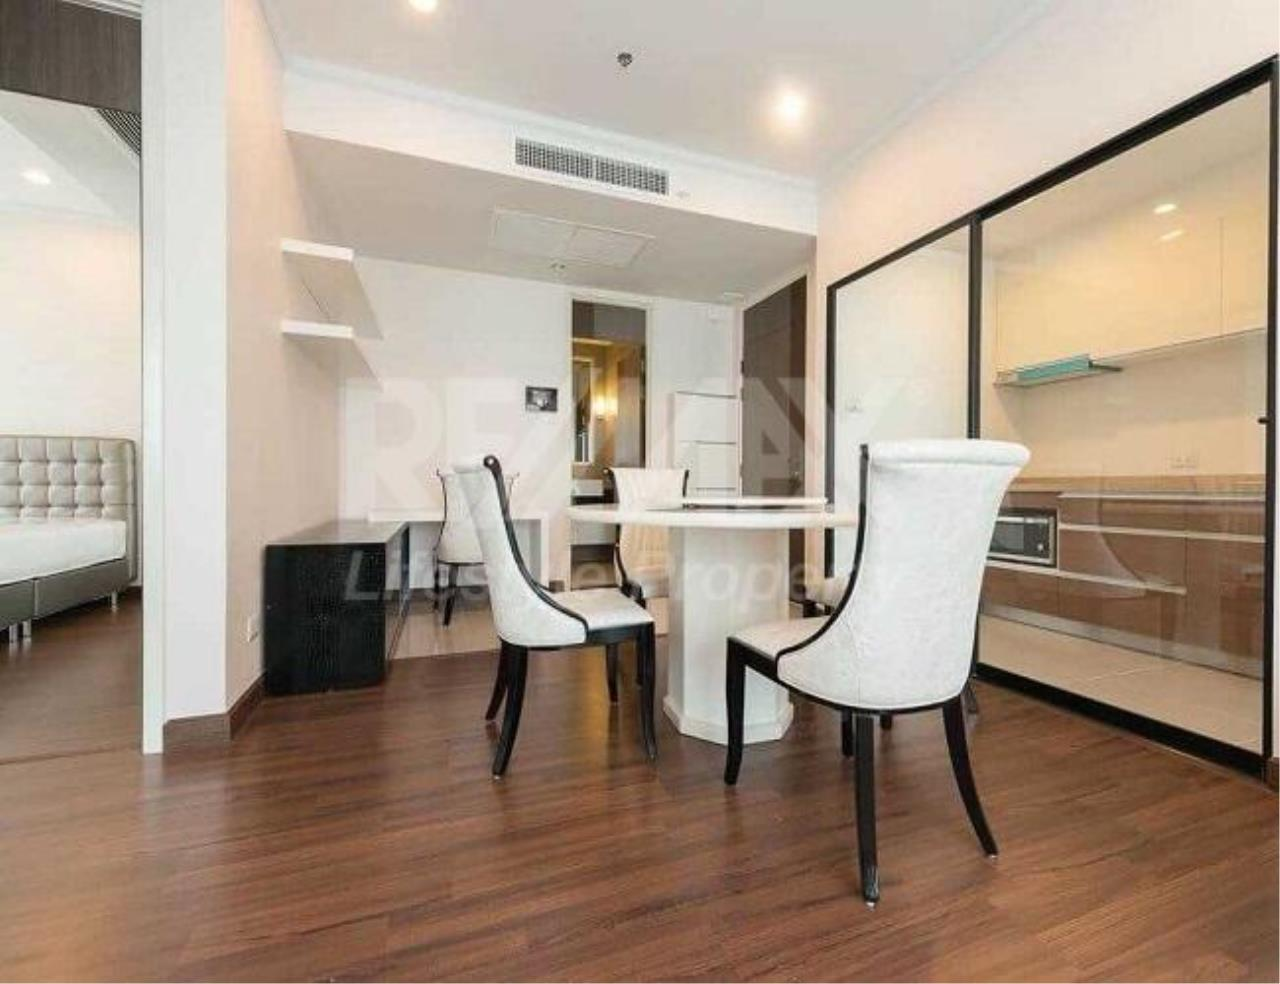 RE/MAX LifeStyle Property Agency's Supalai Elite Sathorn - Suanplu 4